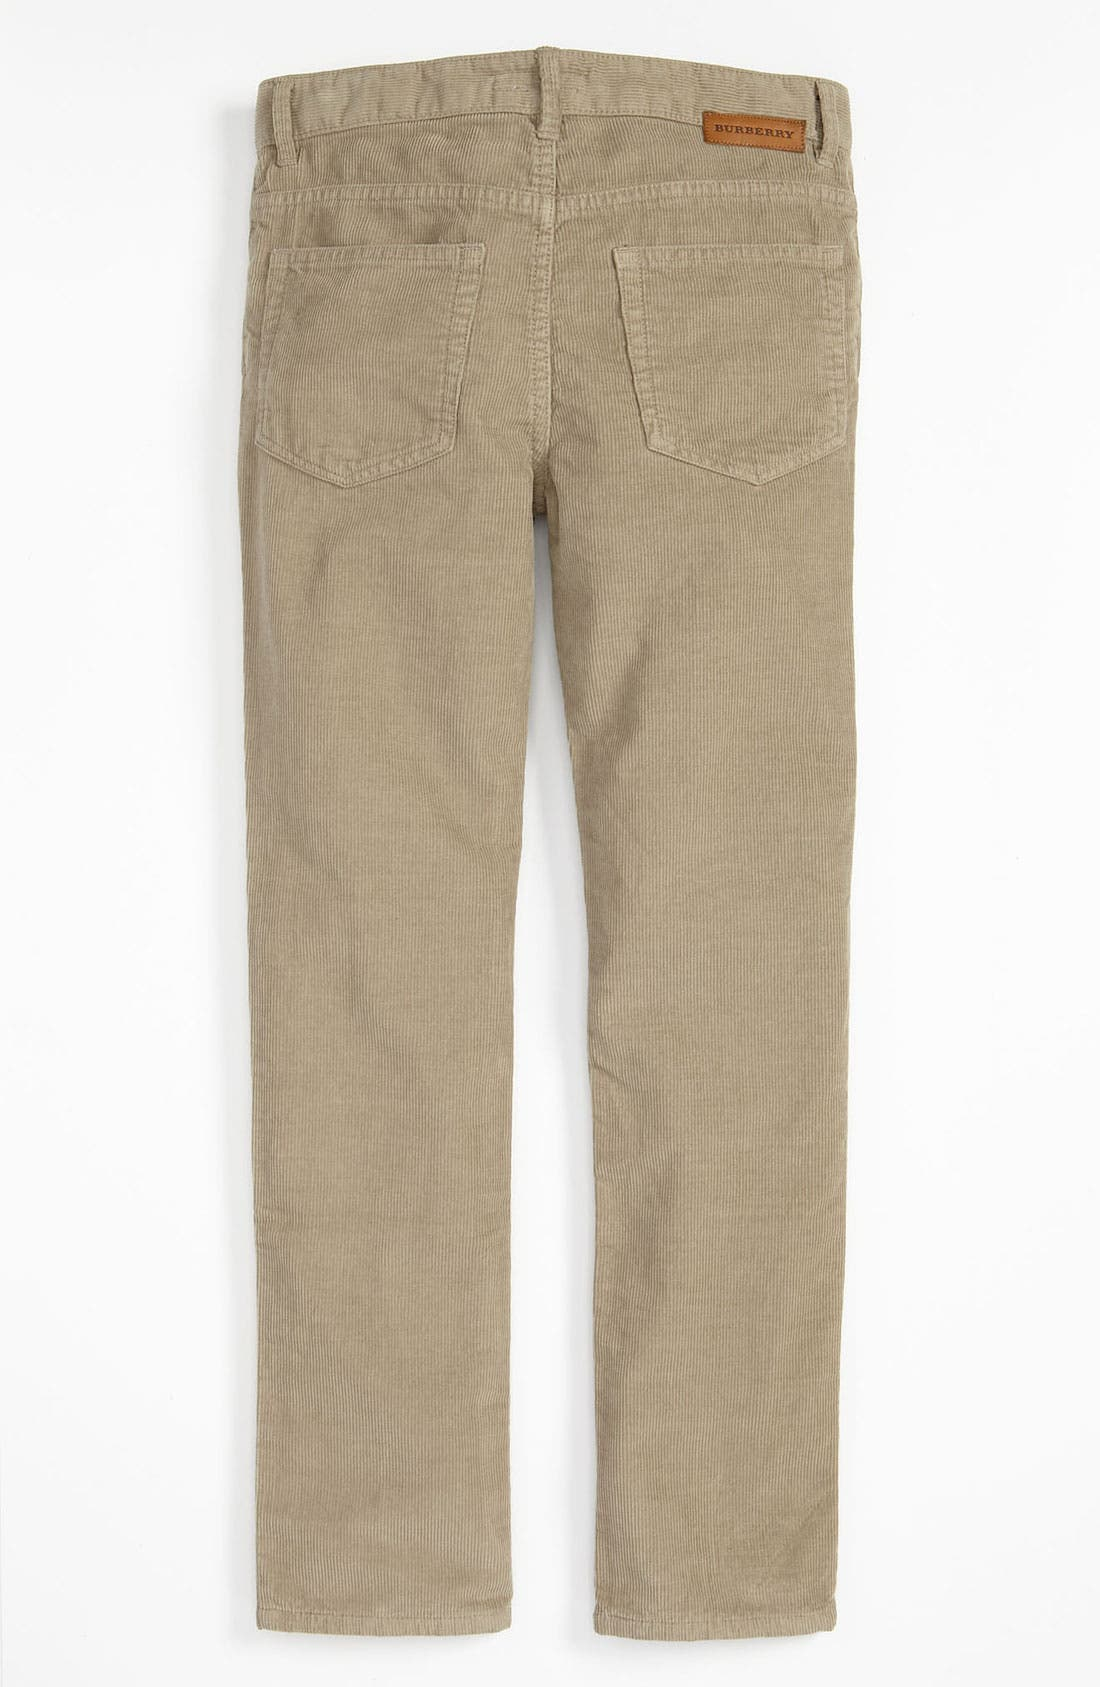 Main Image - Burberry Corduroy Pants (Big Boys)